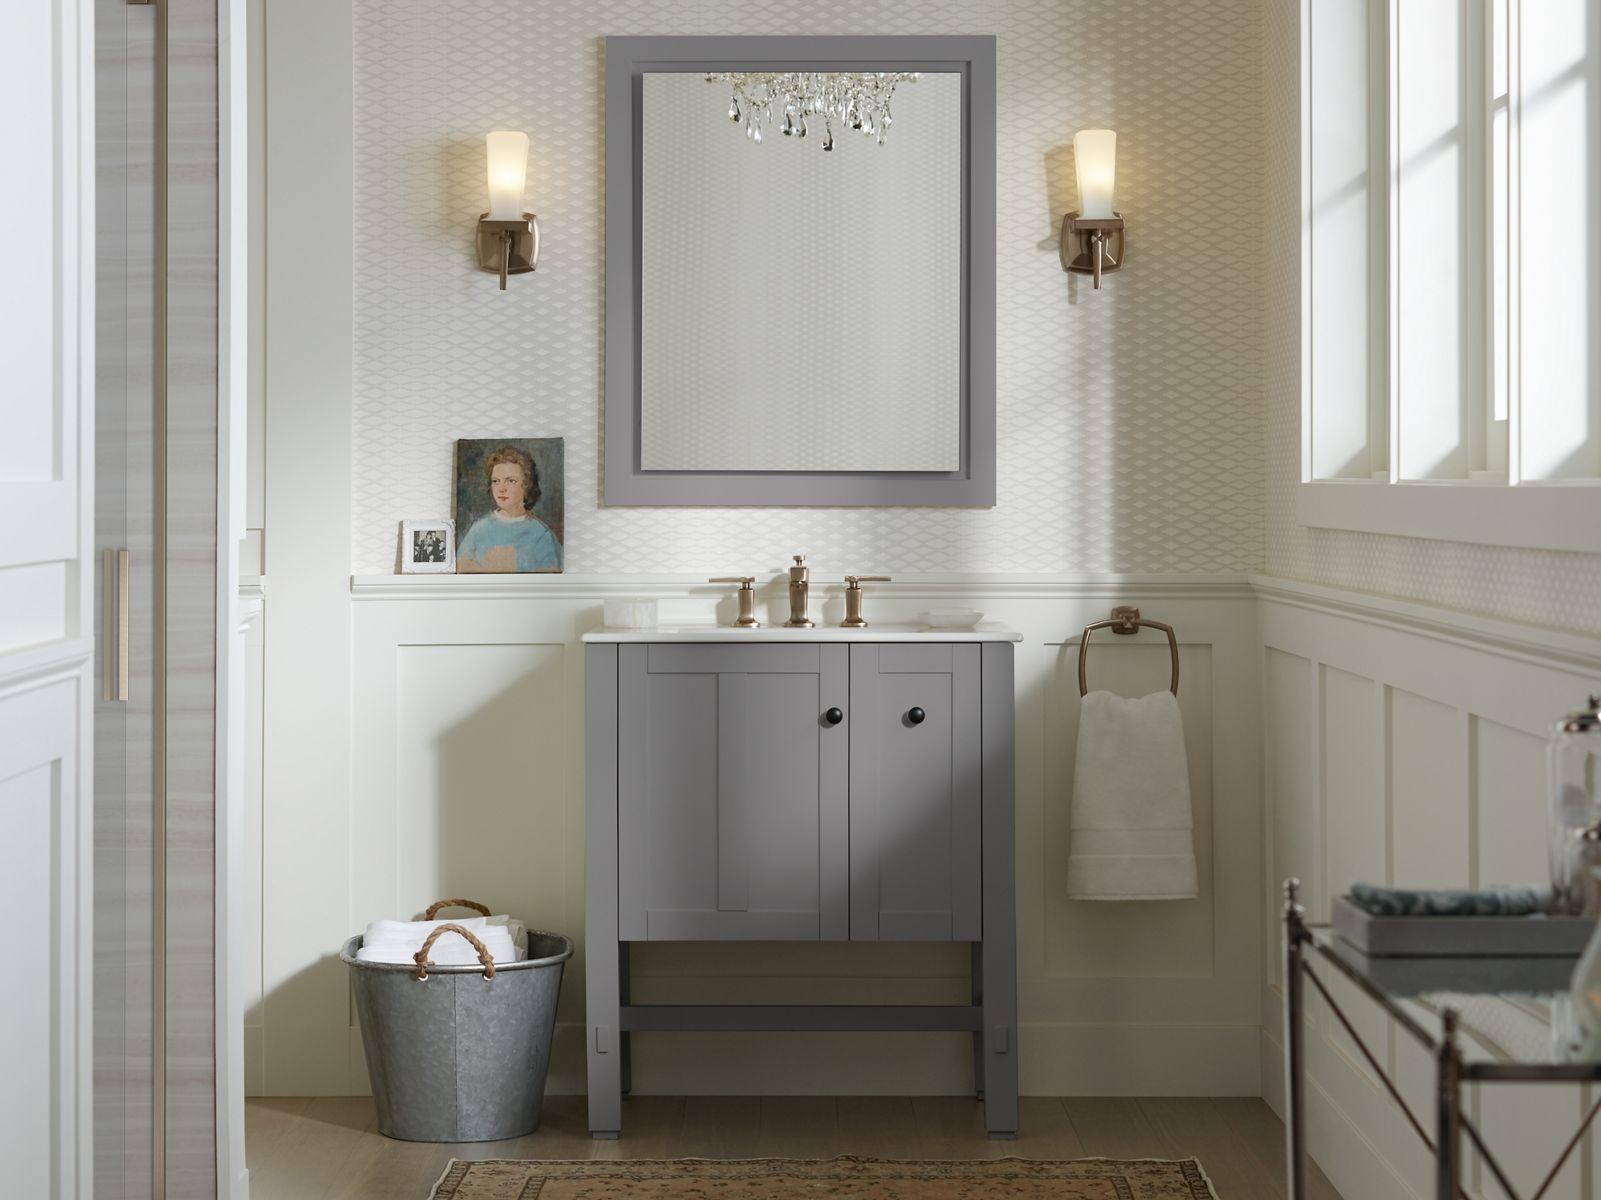 Bathrooms Design : Top Kohler Bathroom Mirrors Home Design Popular With Regard To Extra Wide Bathroom Mirrors (Image 14 of 20)